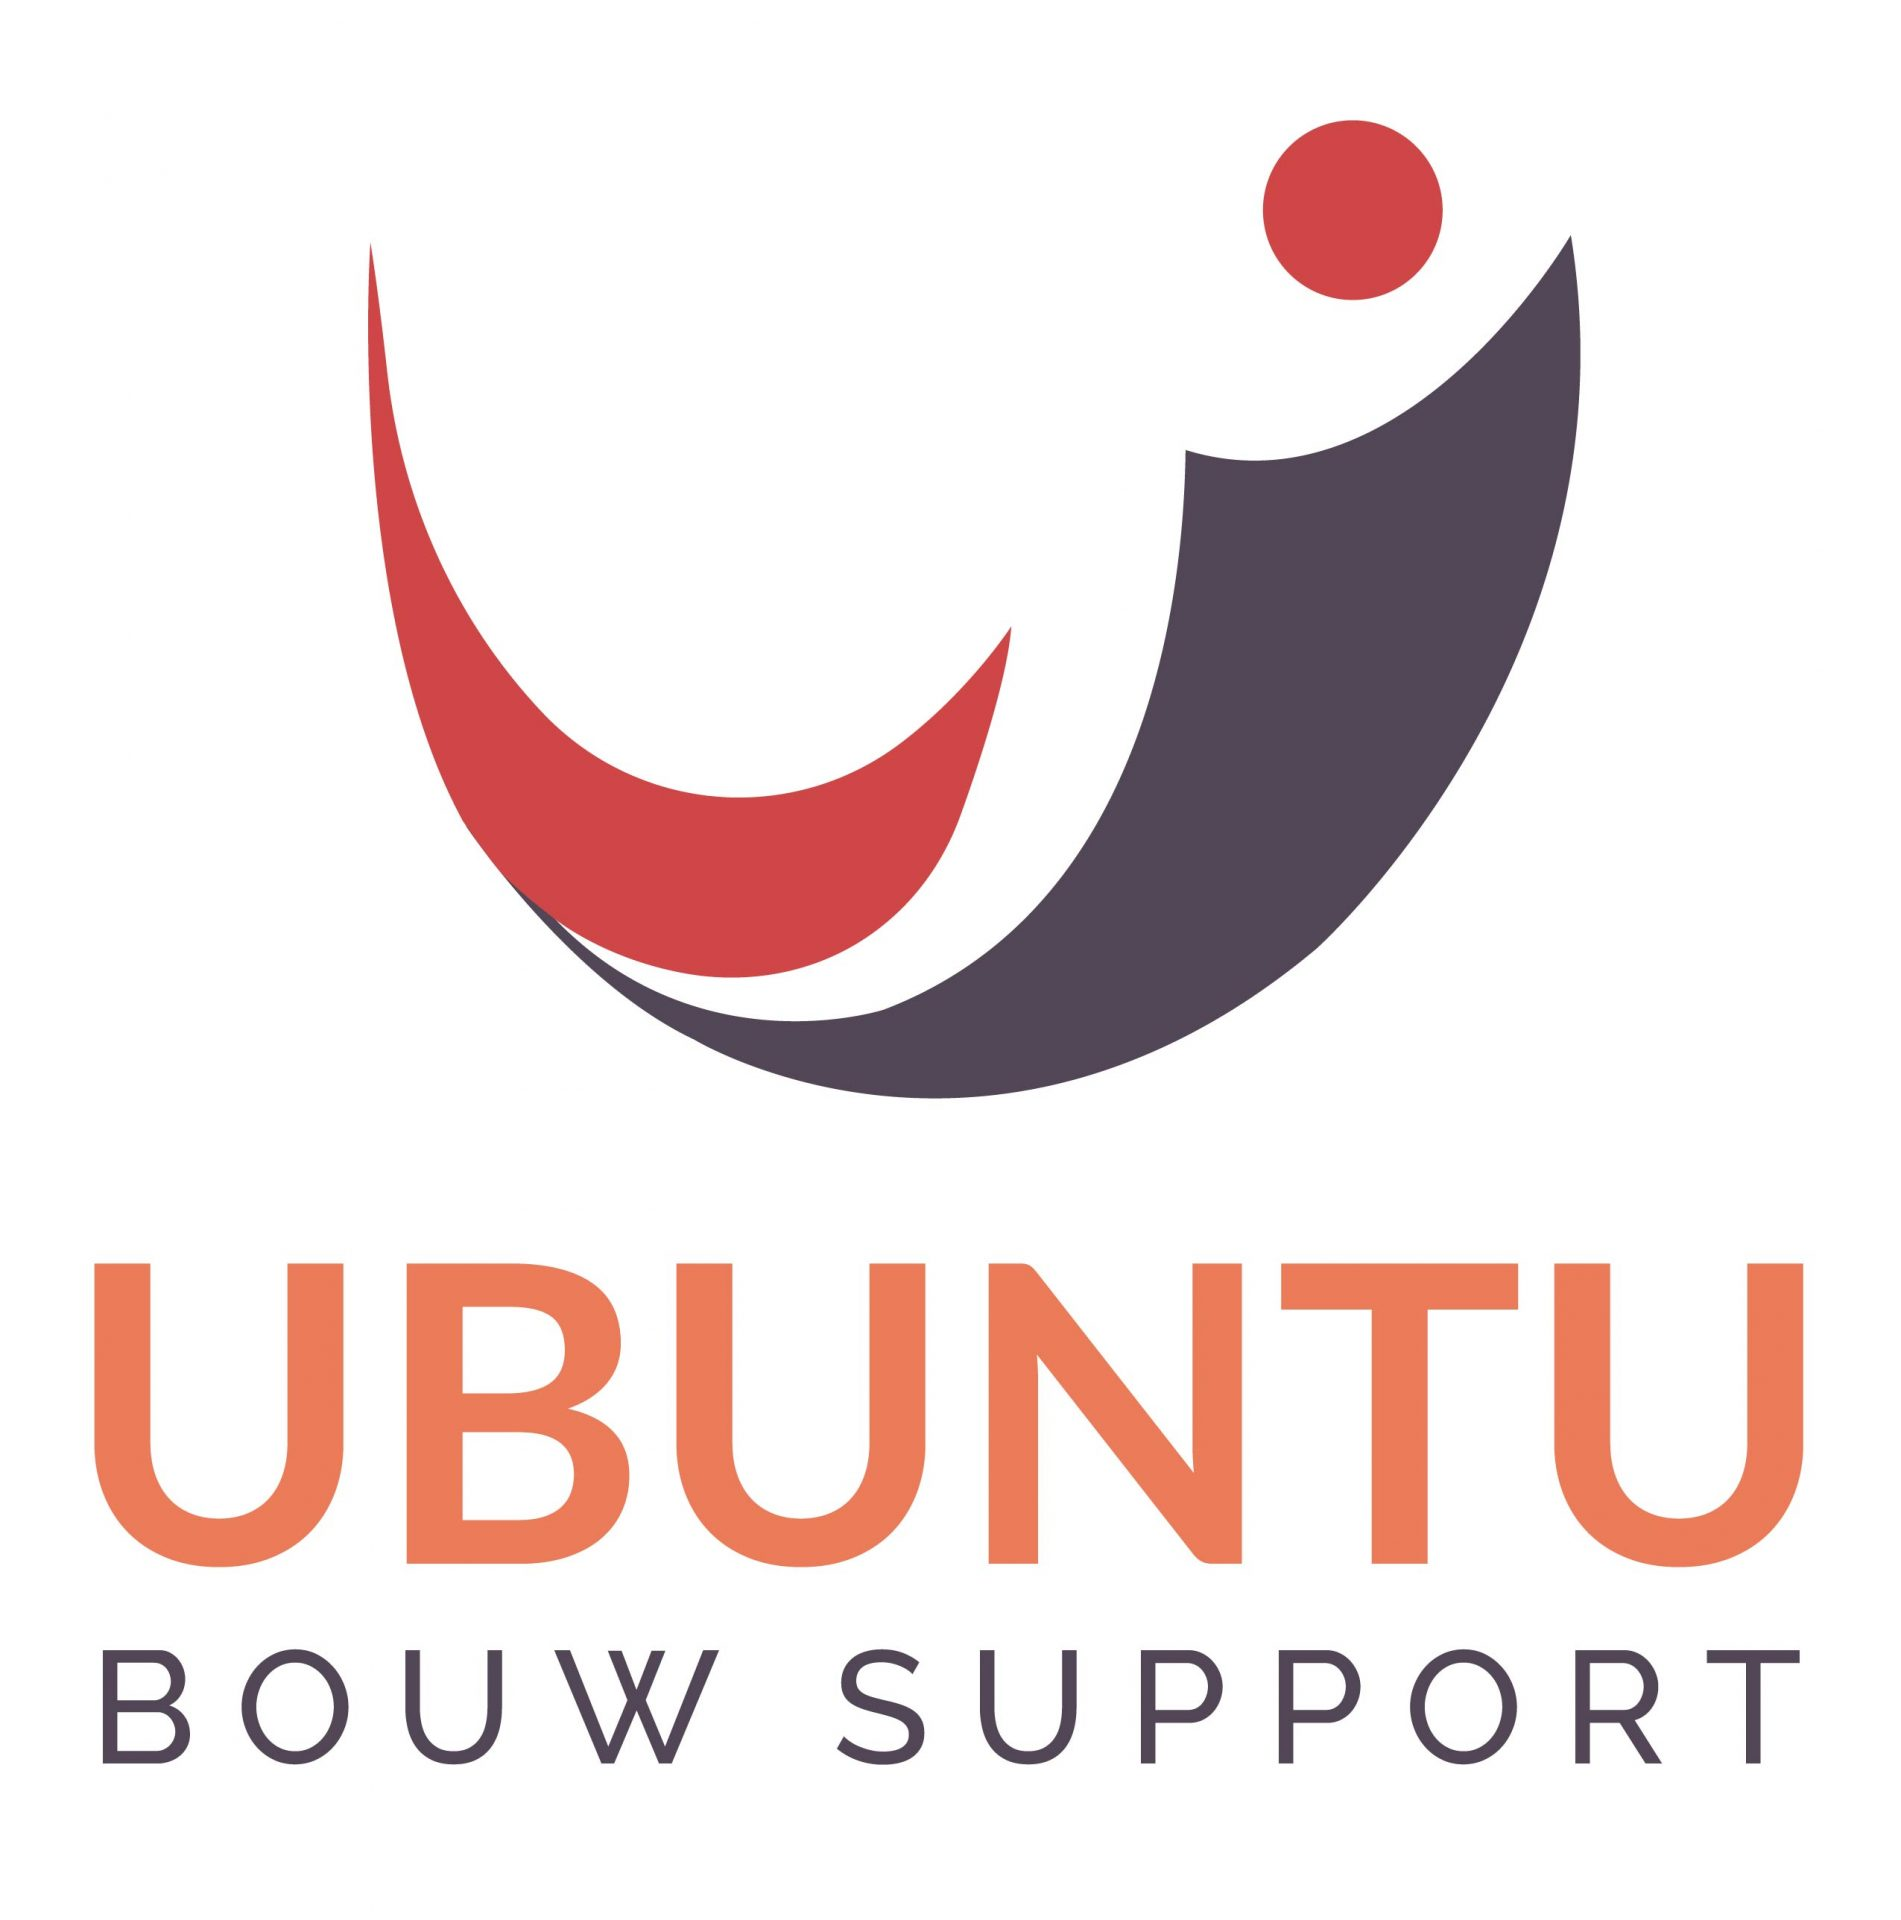 Ubuntu Bouw Support